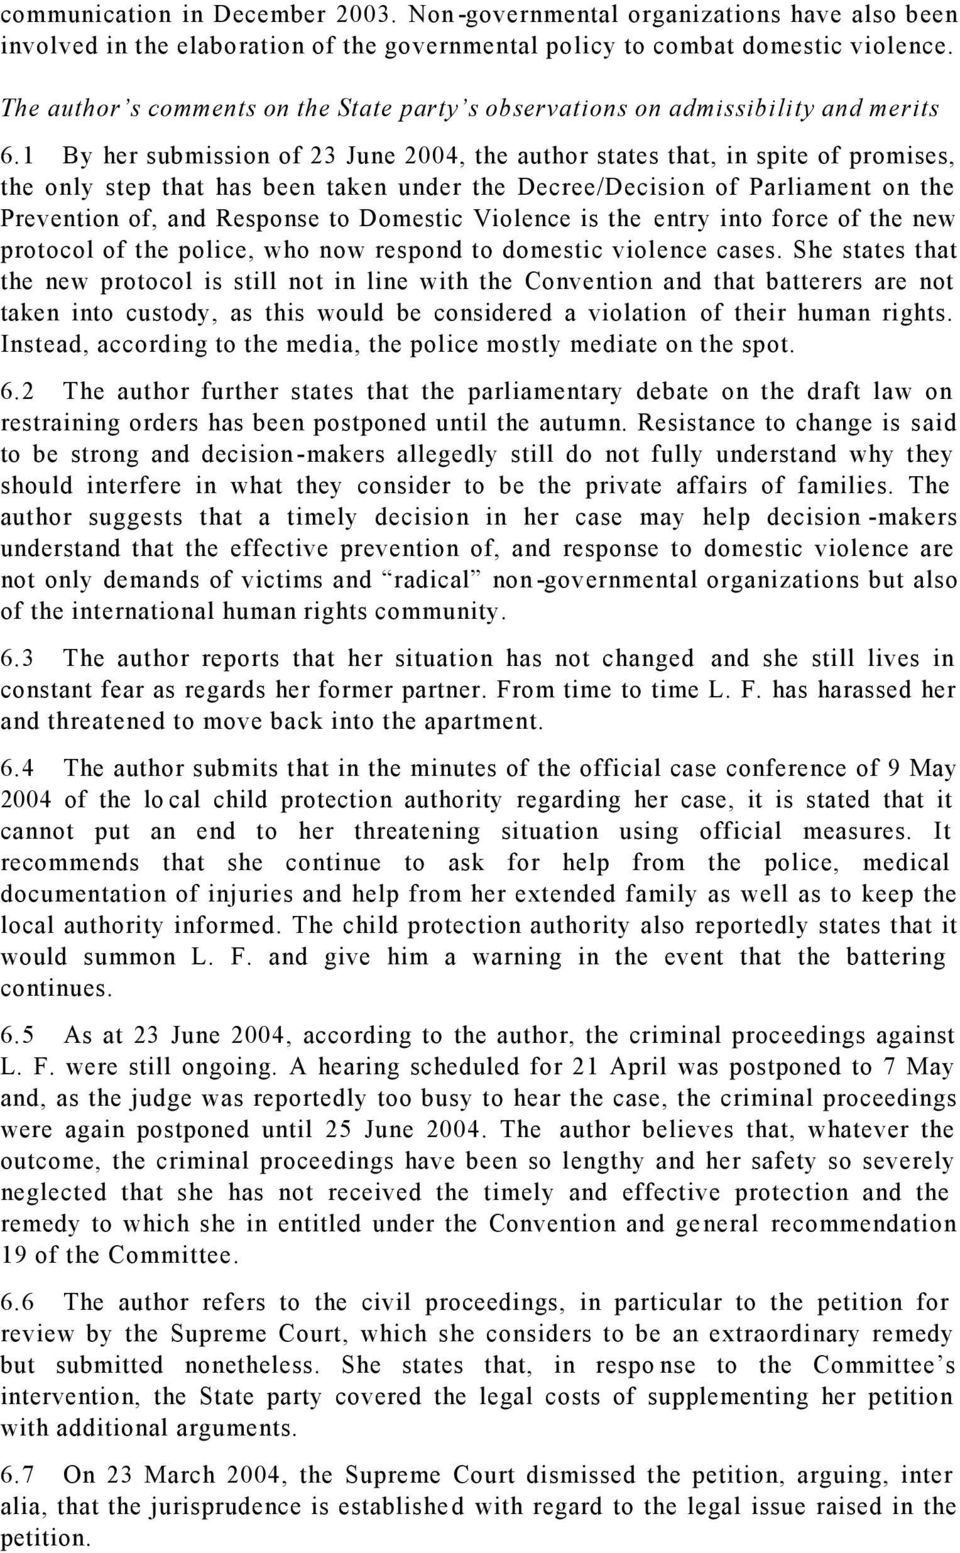 1 By her submission of 23 June 2004, the author states that, in spite of promises, the only step that has been taken under the Decree/Decision of Parliament on the Prevention of, and Response to